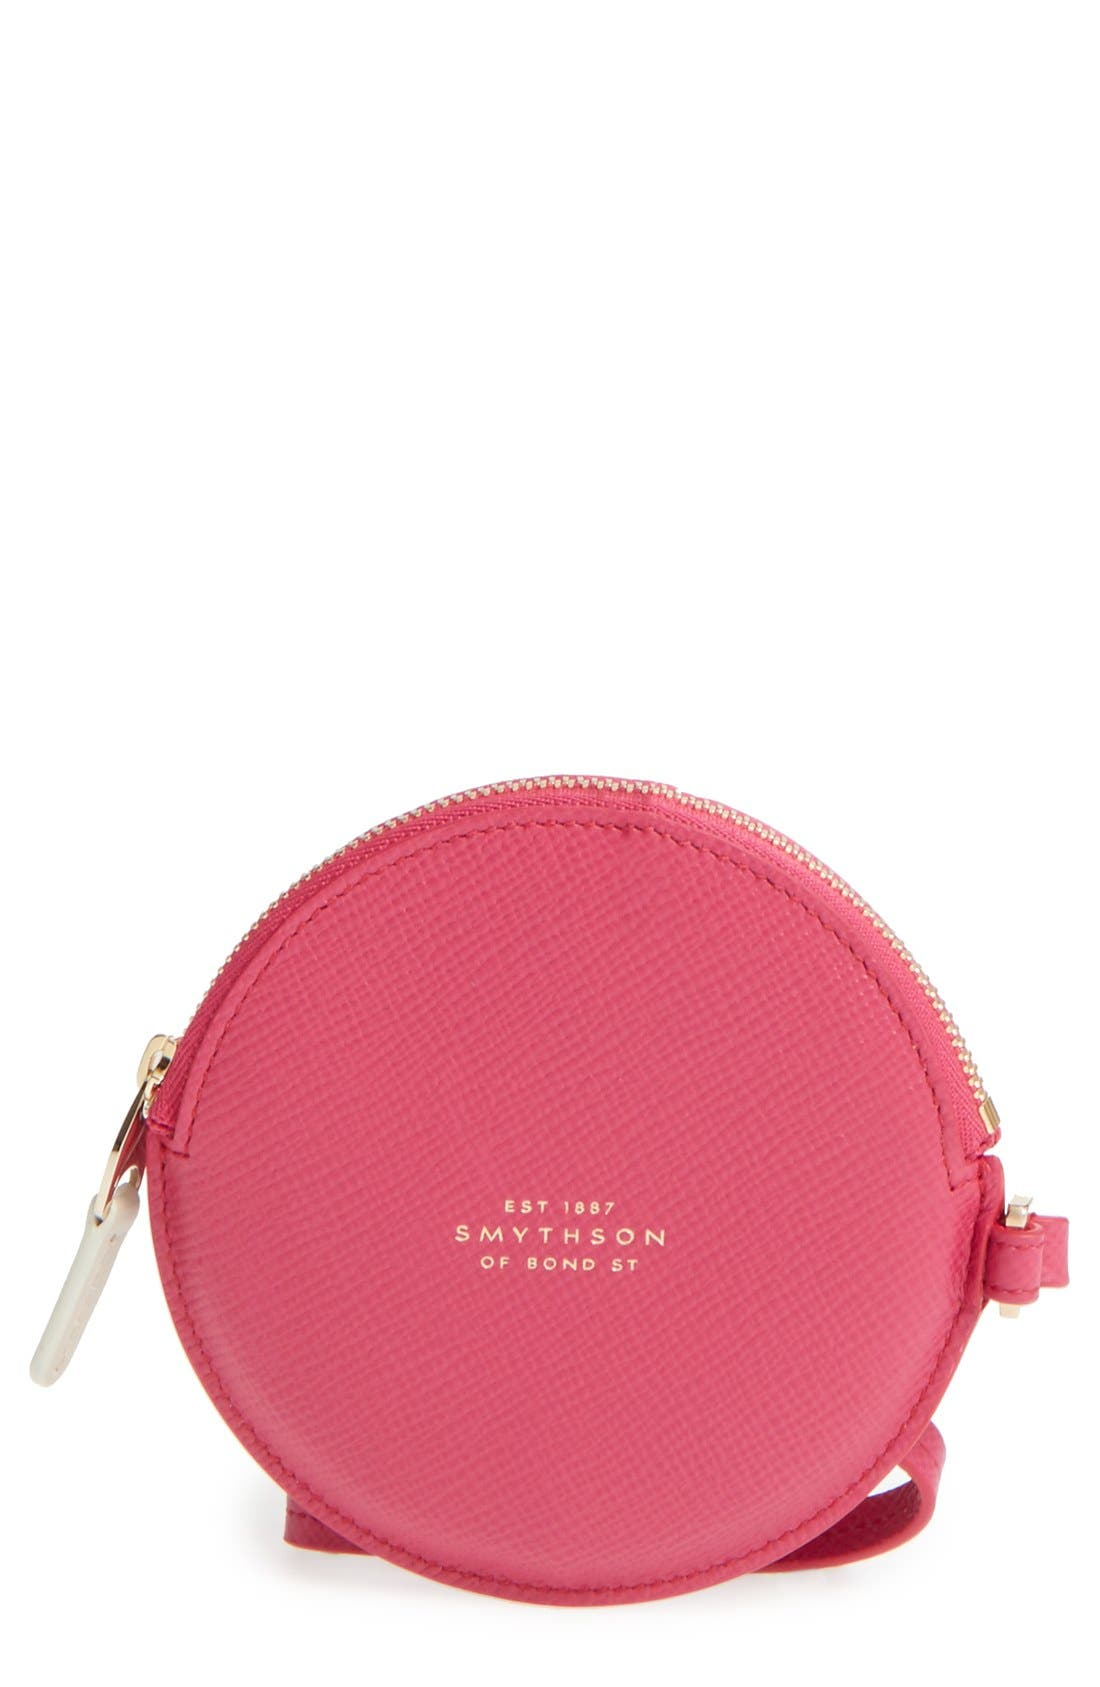 Main Image - Smythson Circle Leather Coin Purse